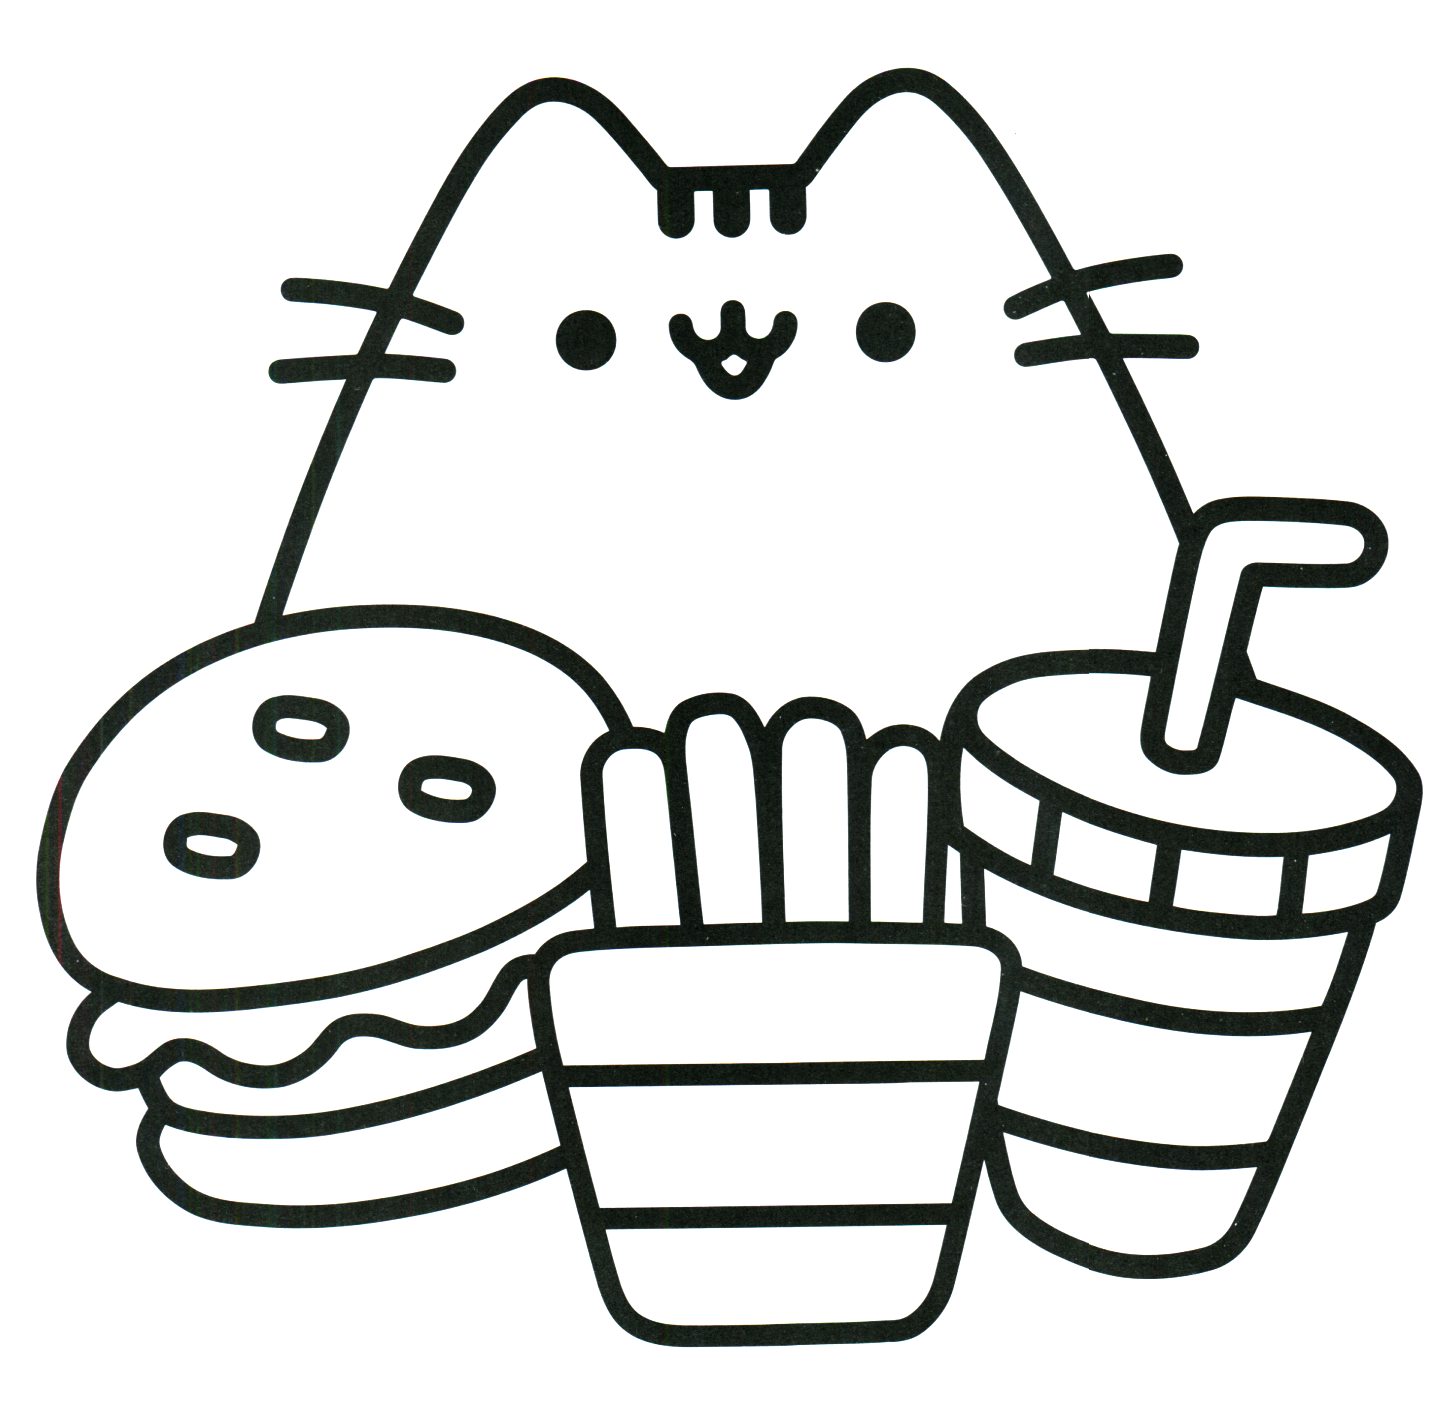 Delicieux Coloring Cute Coloring Pages Ideas Adult Colouri With Online Christmas  Coloring Color Pictures Onli Pusheen Coloring Book Pusheen Pusheen The Cat